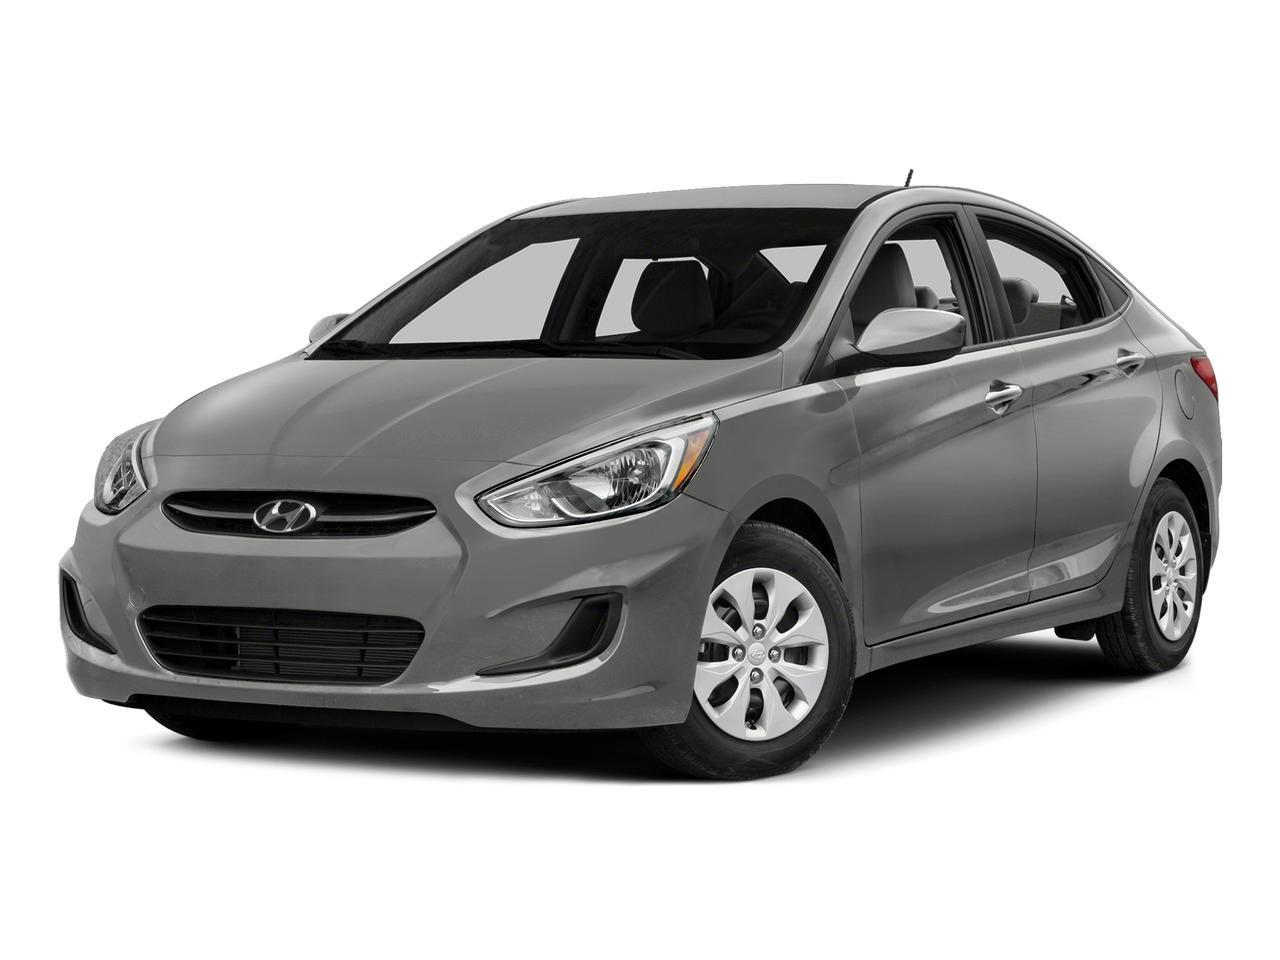 2015 Hyundai Accent Vehicle Photo in Odessa, TX 79762